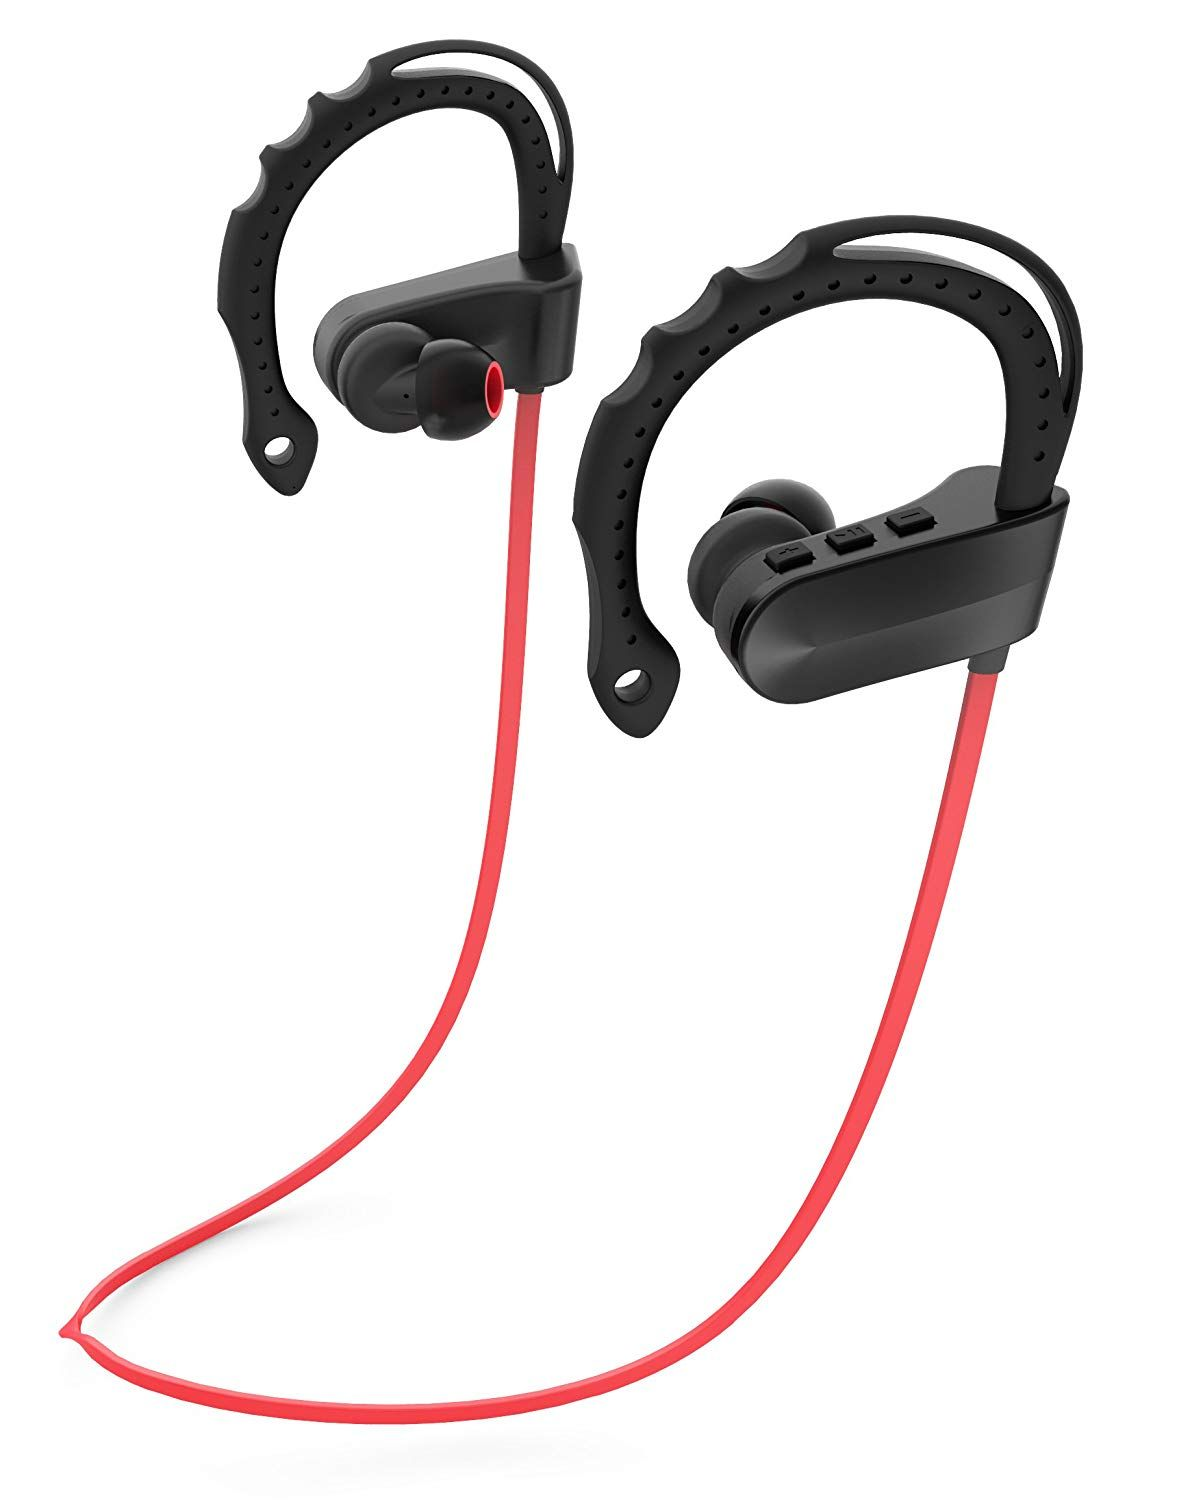 e5d23c92d45 Amazon.com: NEEDOO Bluetooth Headphones,Wireless Headset Stereo Bluetooth  V4.1 Earbuds Sweatproof Sports Earphones with Built in Microphone for iPhone  iPad ...